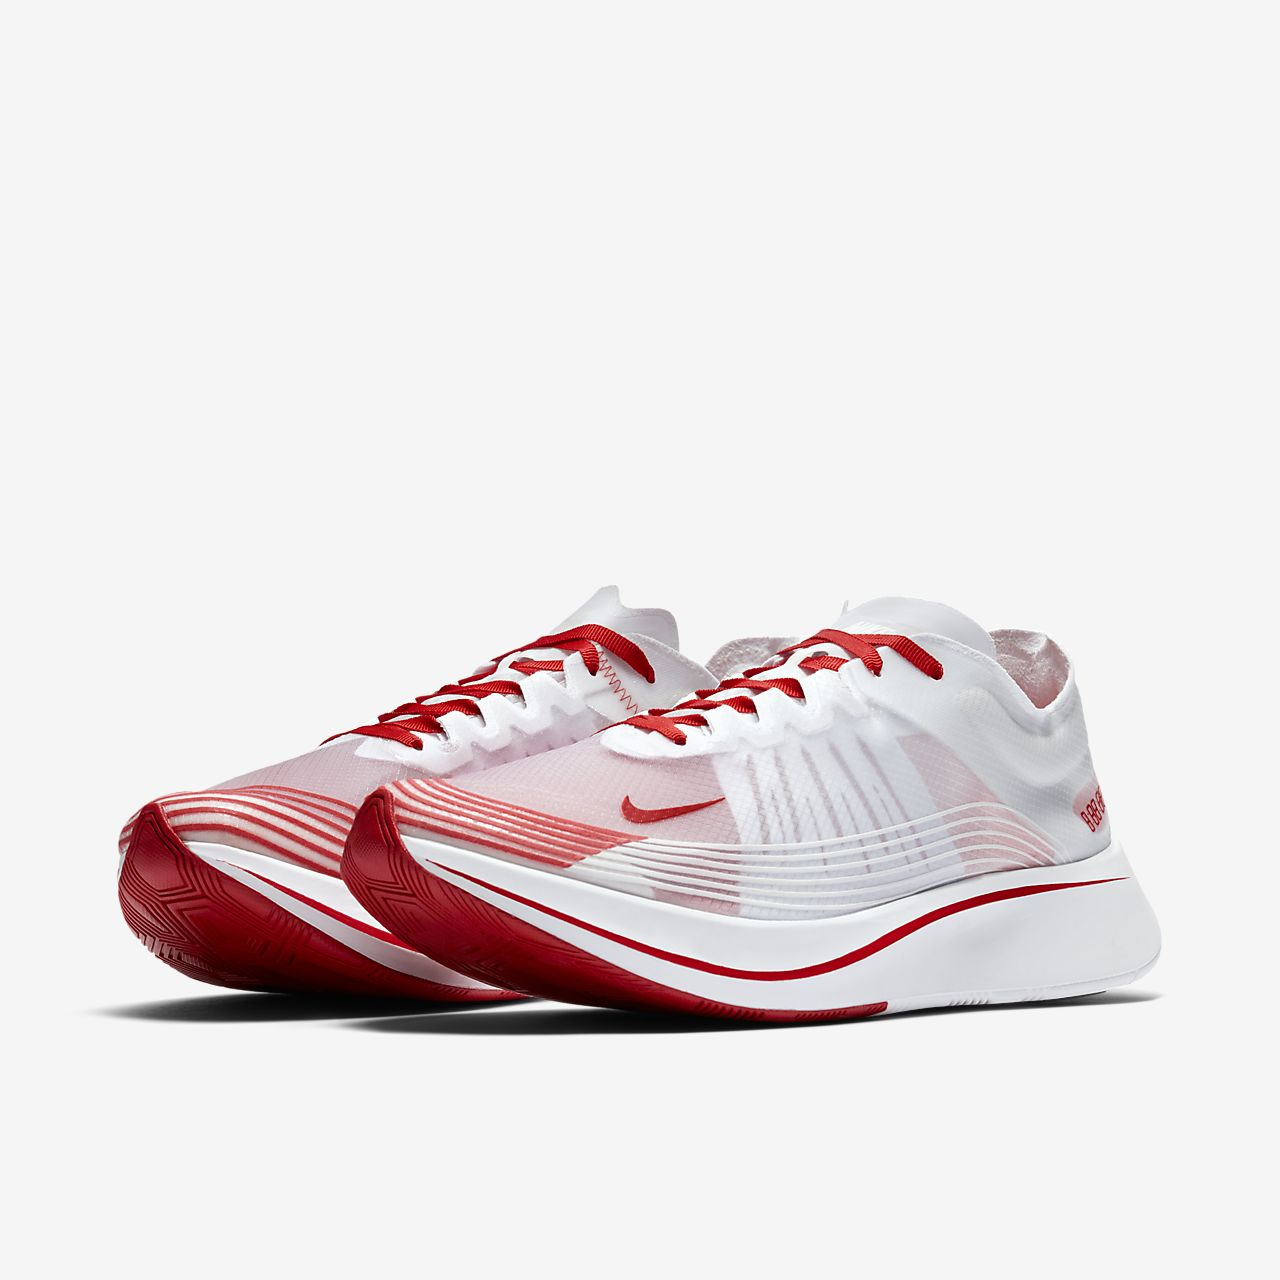 nike zoom fly sp 男子跑步鞋